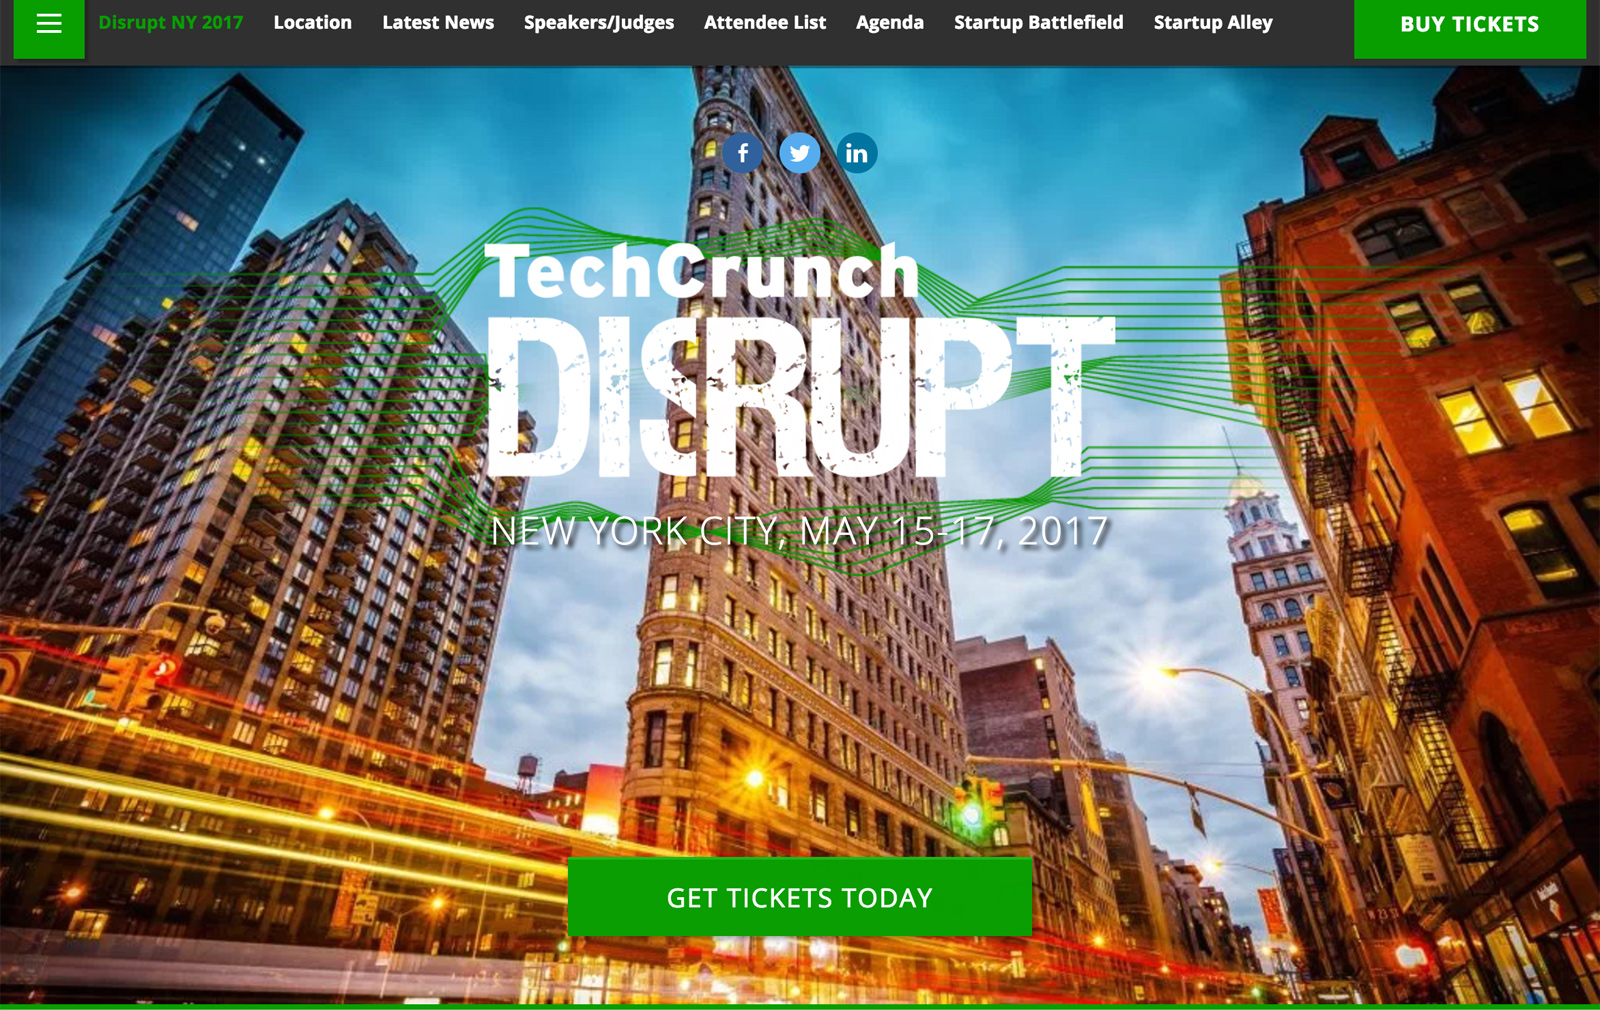 TechCrunch Disrupt NY 2017